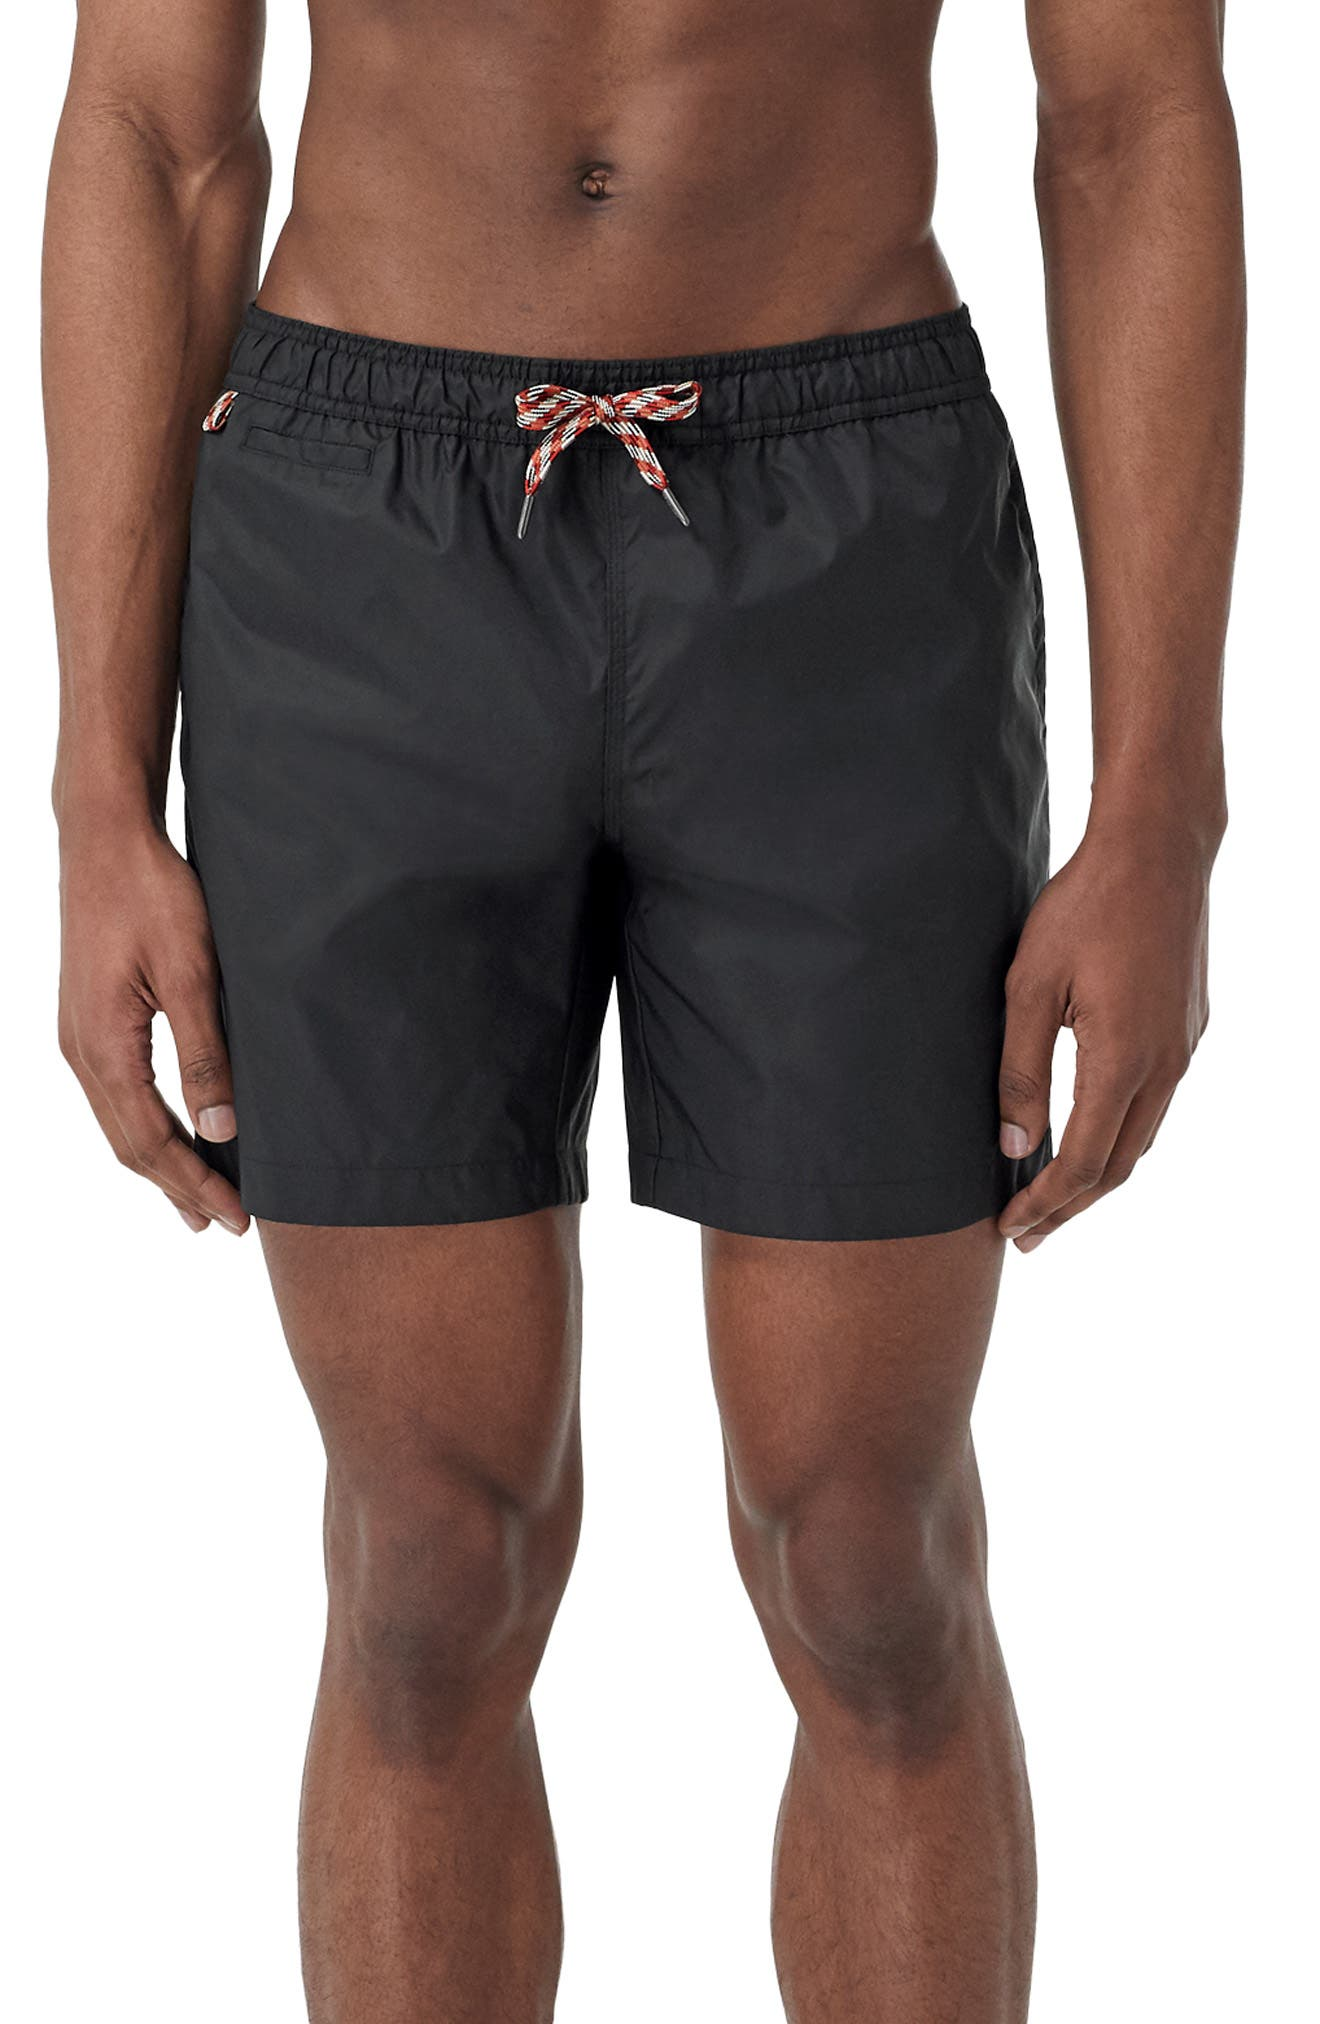 Quick-drying black swim trunks keep you supported and comfortable in or out of the water with a breathable mesh-brief lining. Style Name: Burberry Martin Swim Trunks. Style Number: 6016505. Available in stores.